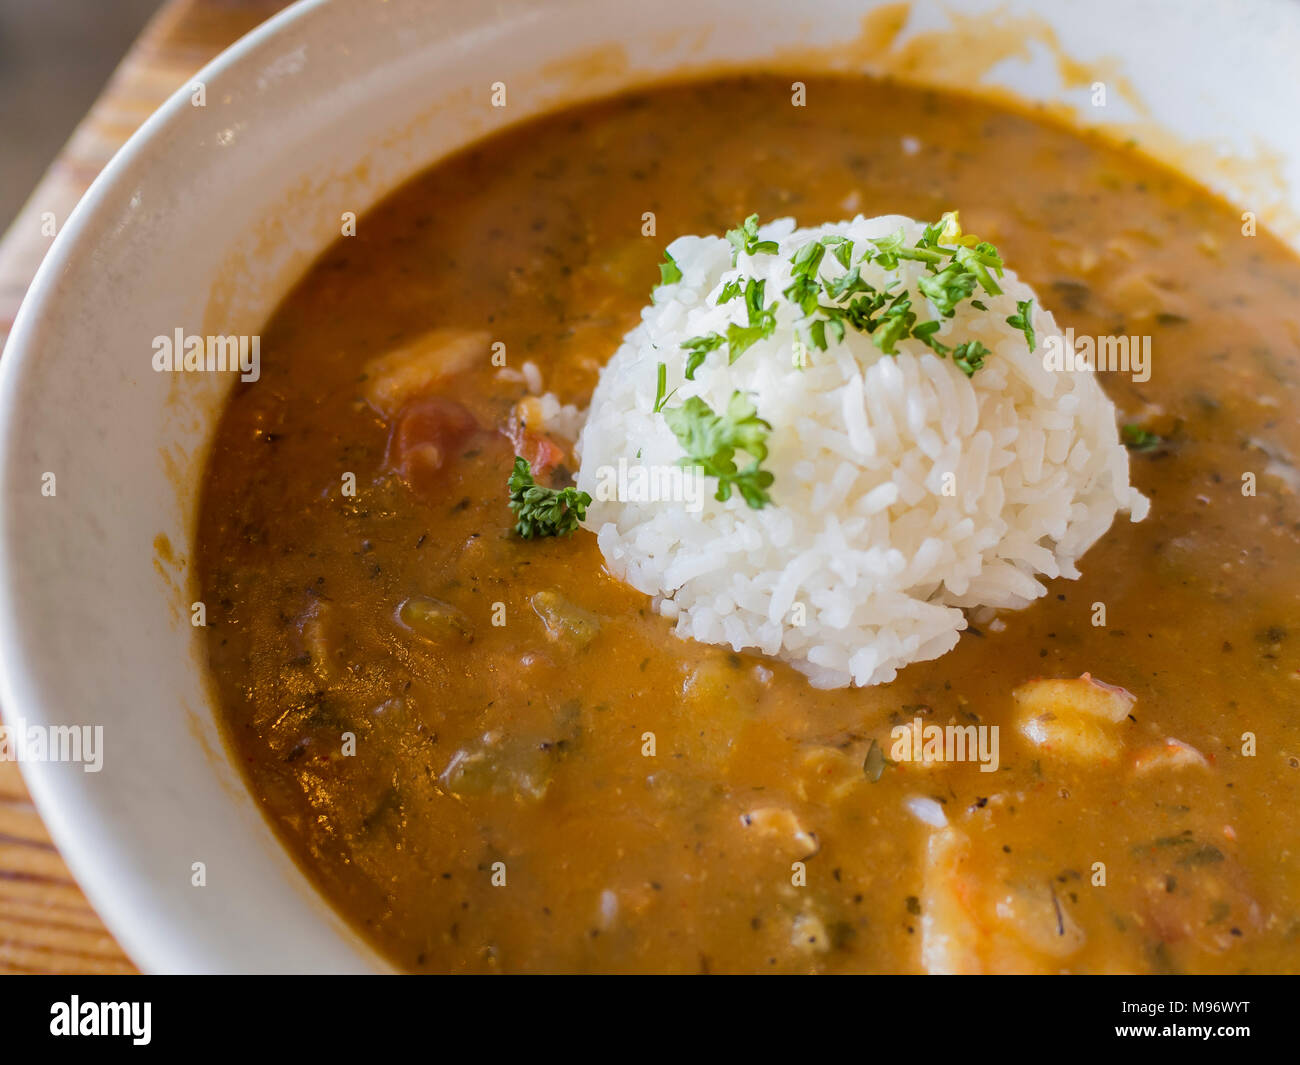 Delicious Cajun style gumbo seafood rice, ate at Los Angeles - Stock Image